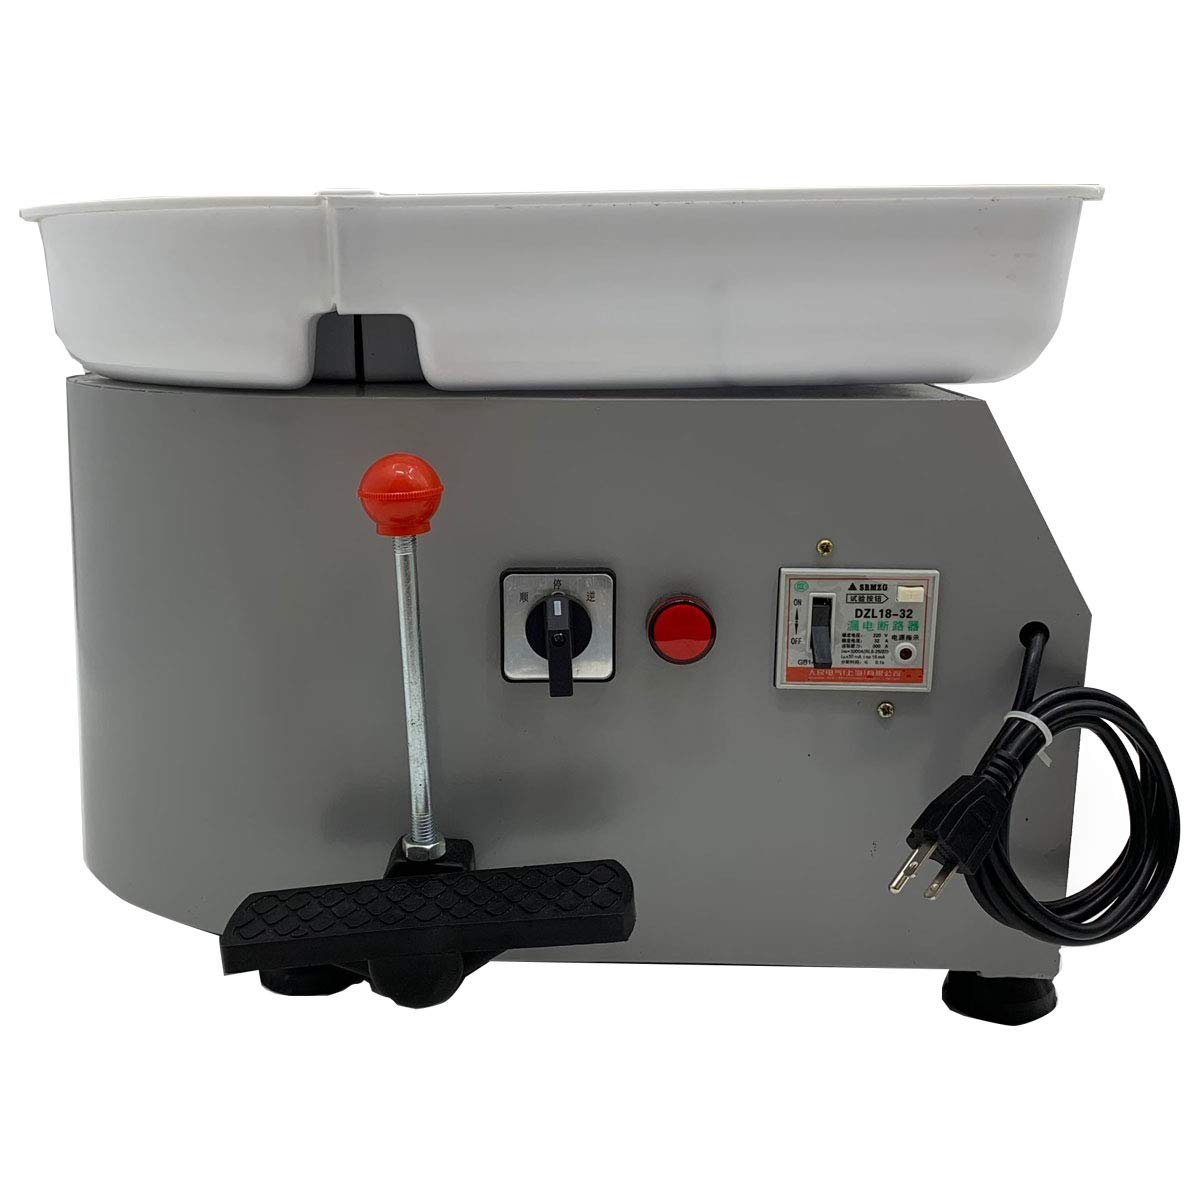 HOTSTORE Pottery Wheel 25CM Pottery Forming Machine Electric Pottery Wheel with Foot Pedal and Tray Easy Cleaning for Ceramics Clay Art Craft DIY Clay 350W 110V